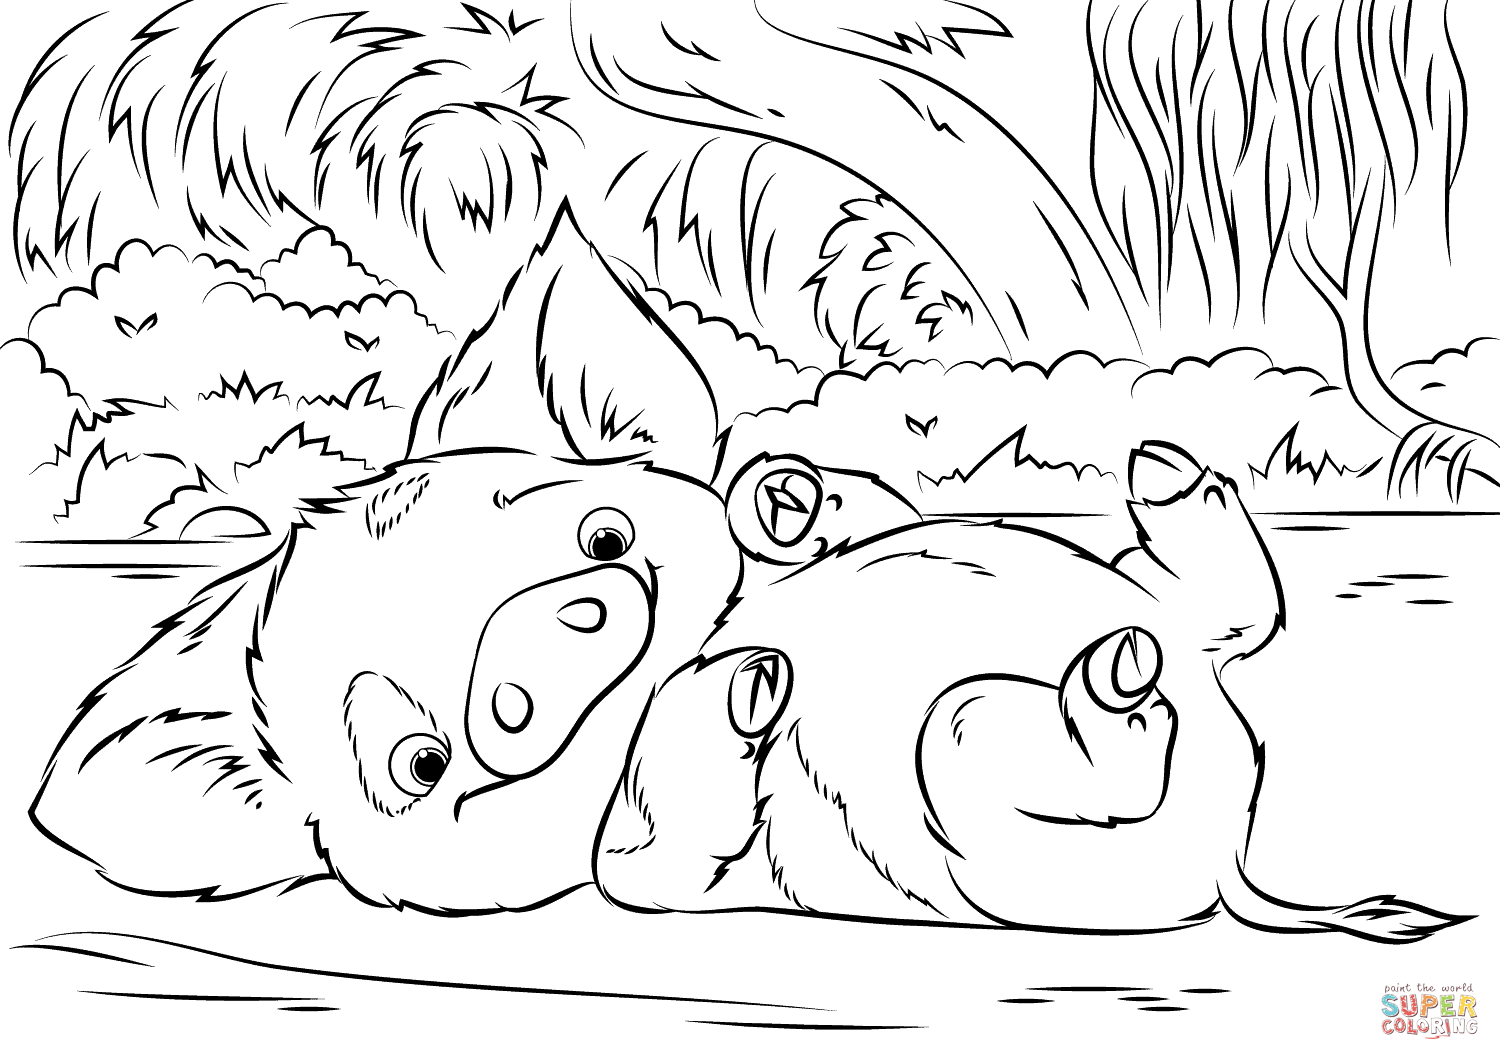 pig from moana coloring page pua pig from moana 1 coloring page free coloring pages moana page coloring pig from